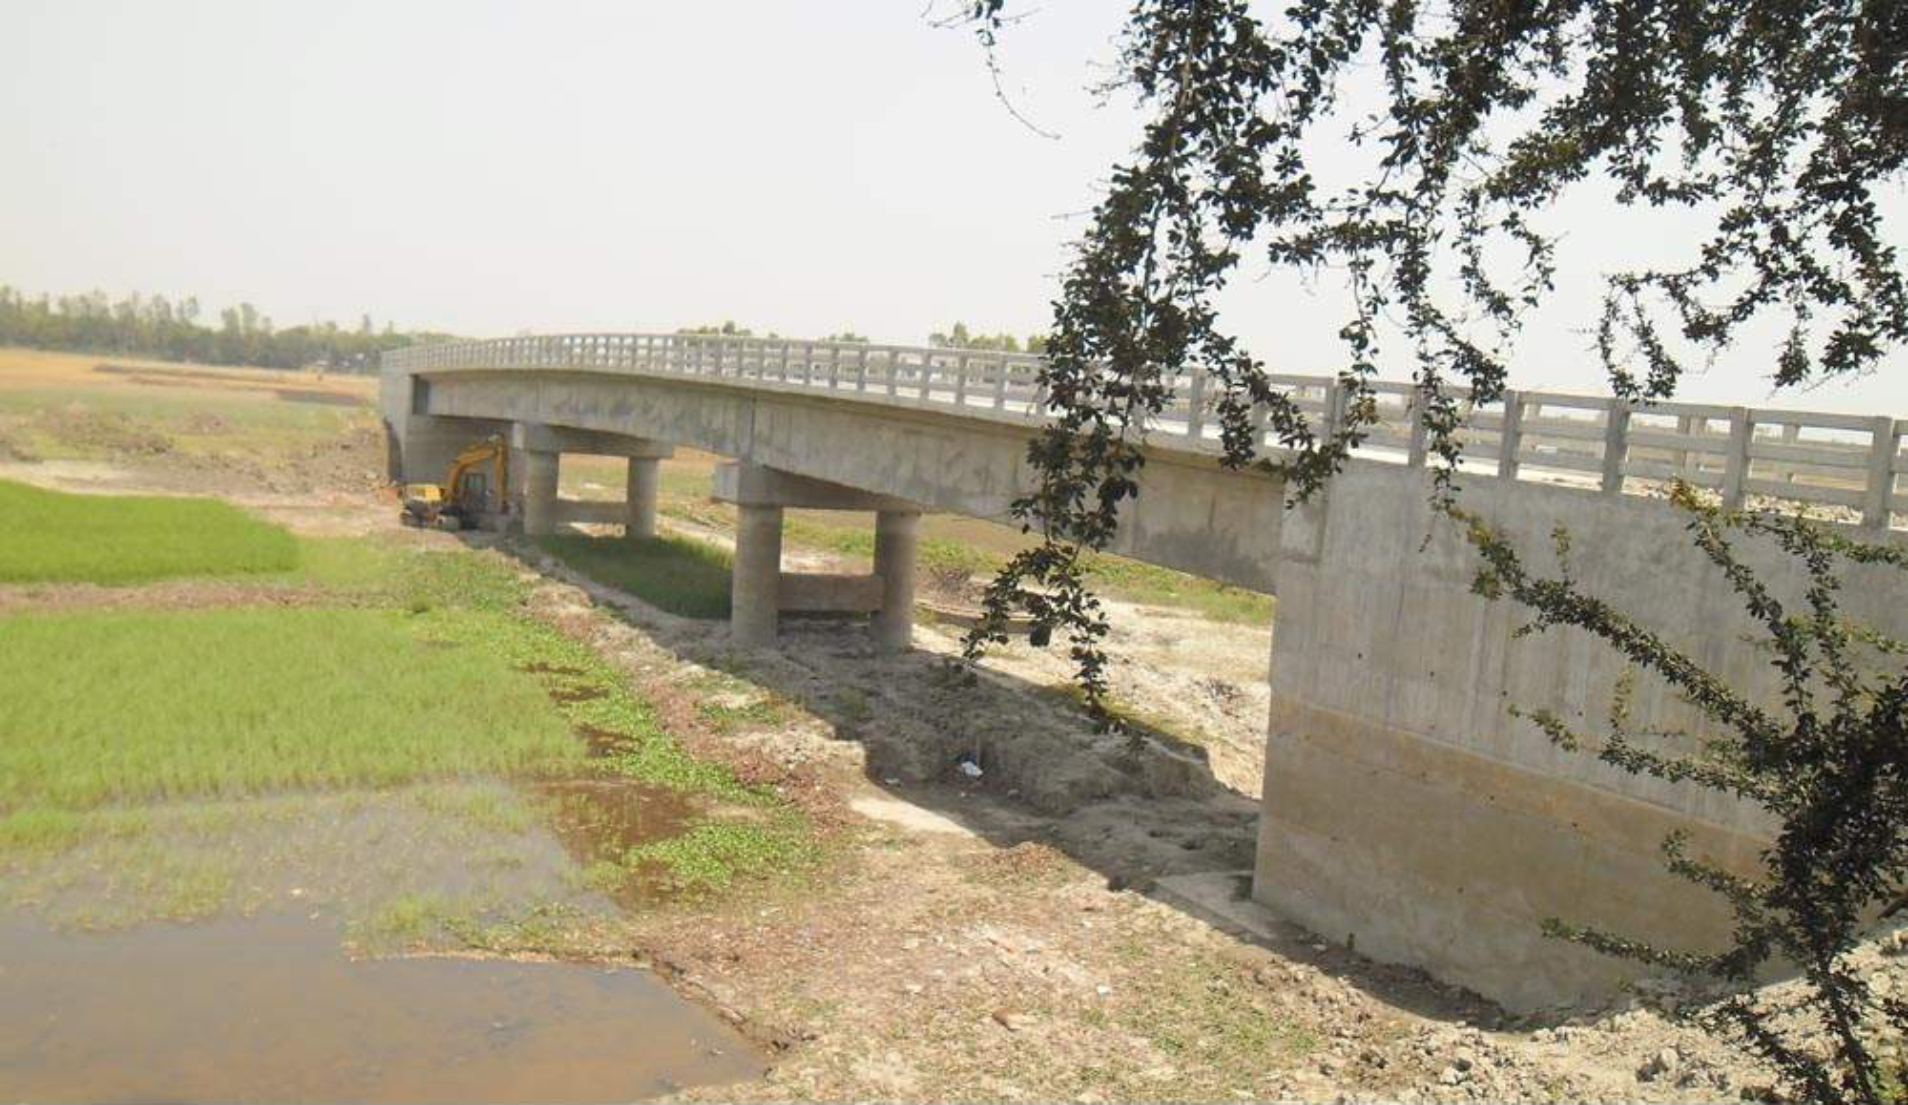 This bridge over Kodomtala canal at Aminpur village in Bera upazila under Pabna district remains a mockery for locals since completion of its construction a year ago as it cannot be used due to lack of an approach road. PHOTO: STAR